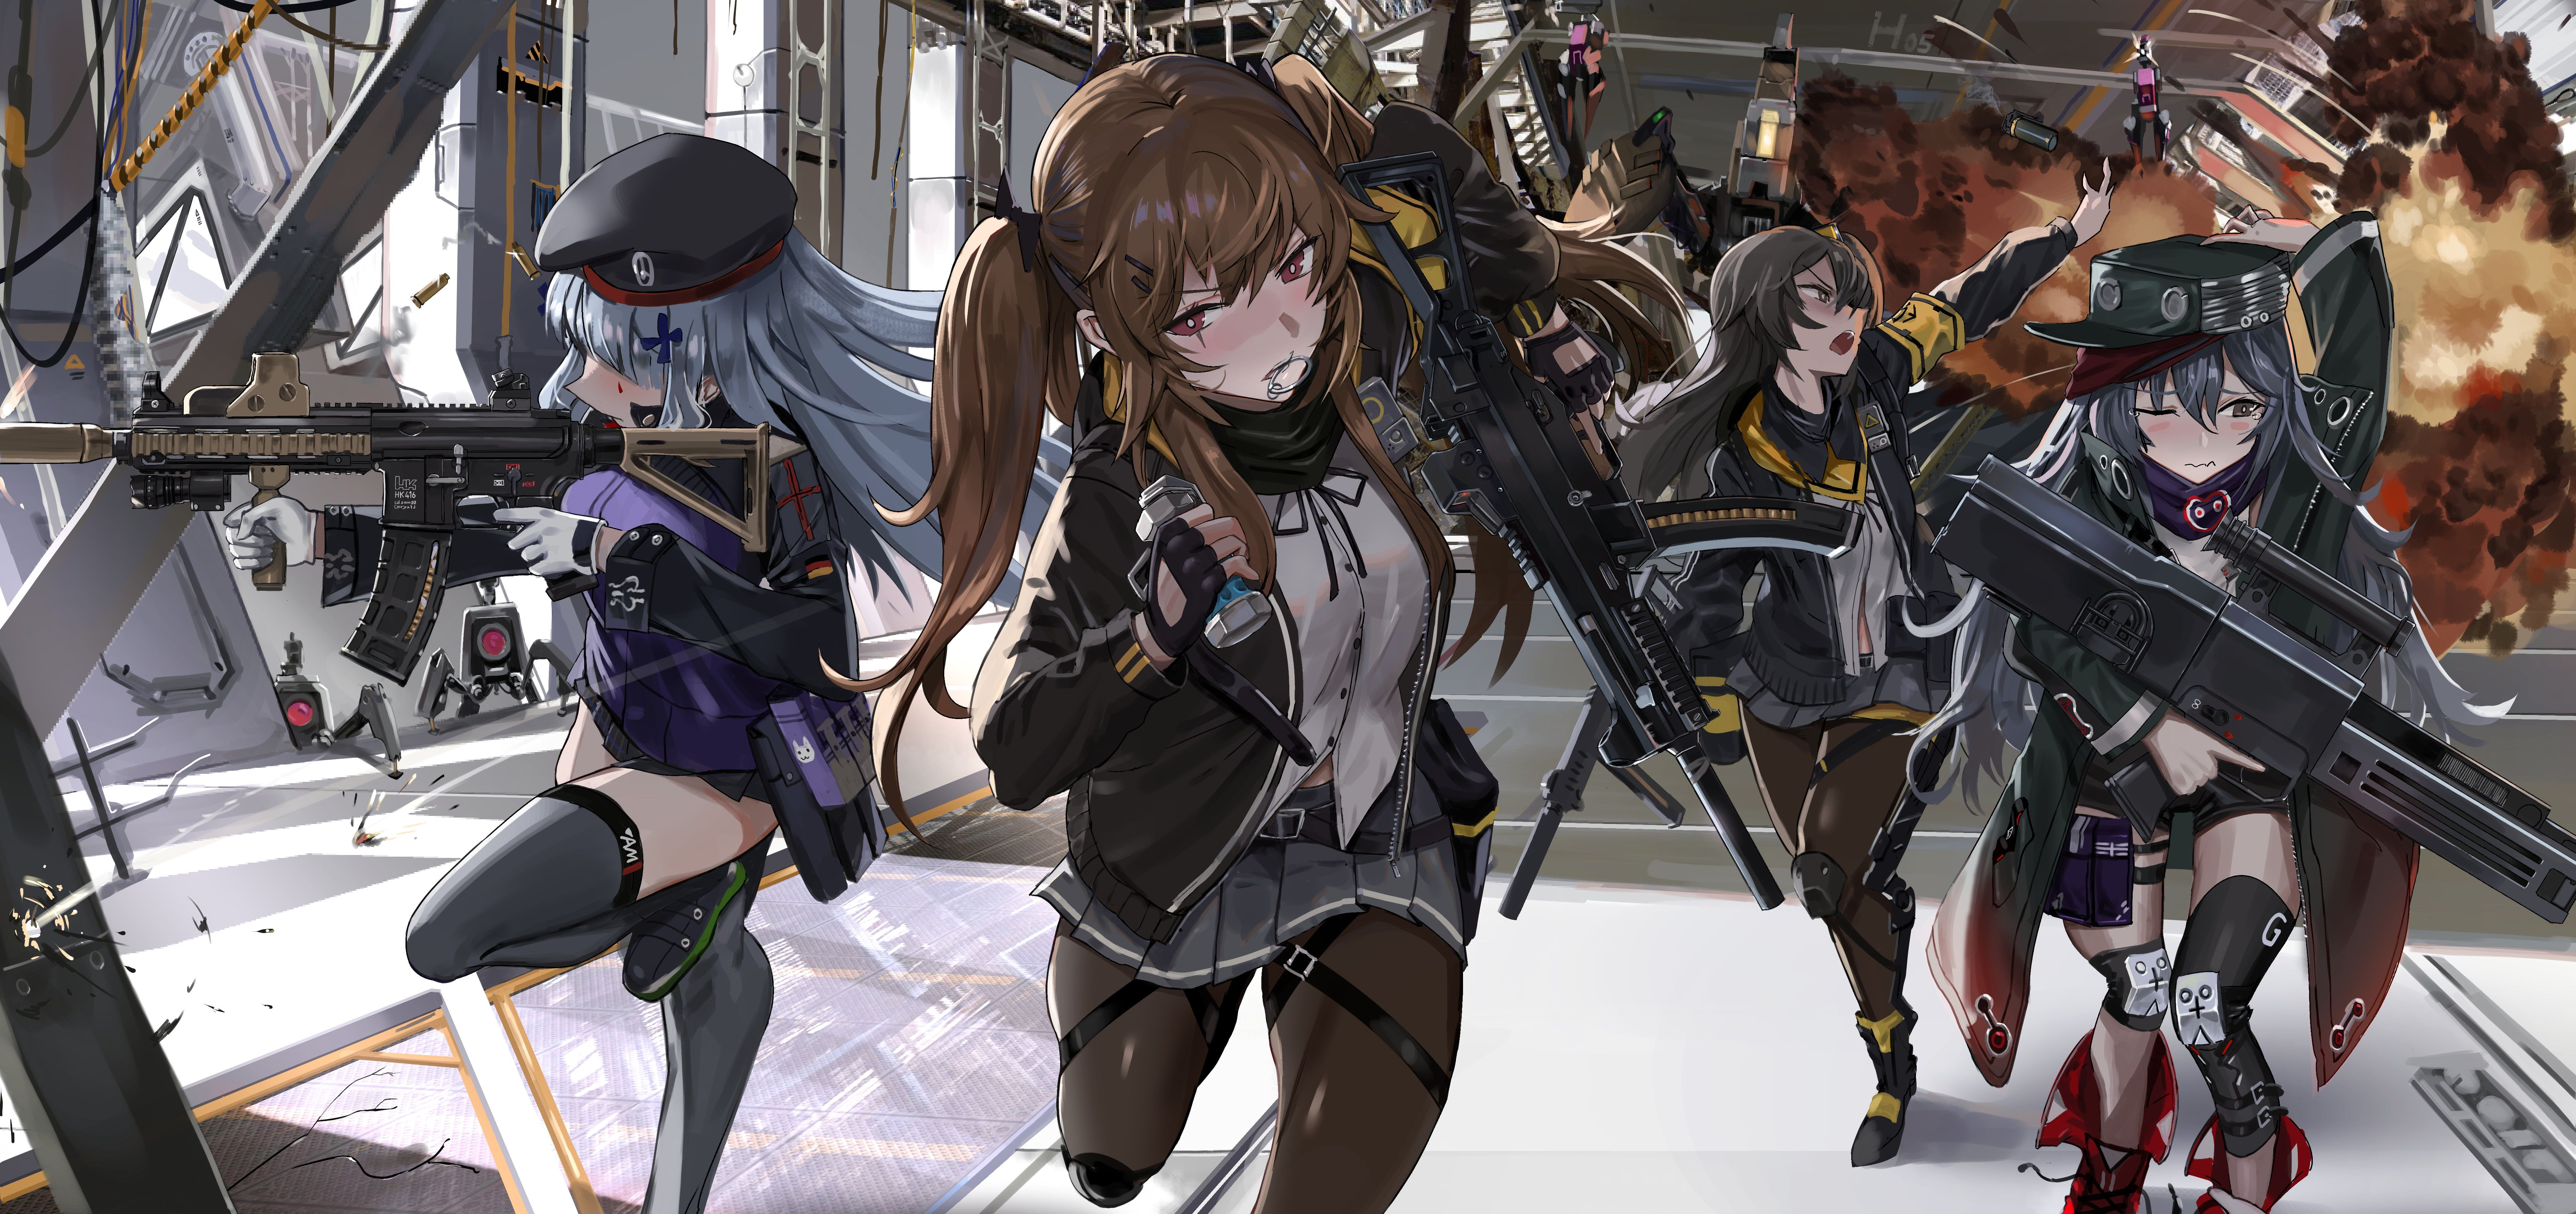 group of girls anime character explosion girls with guns